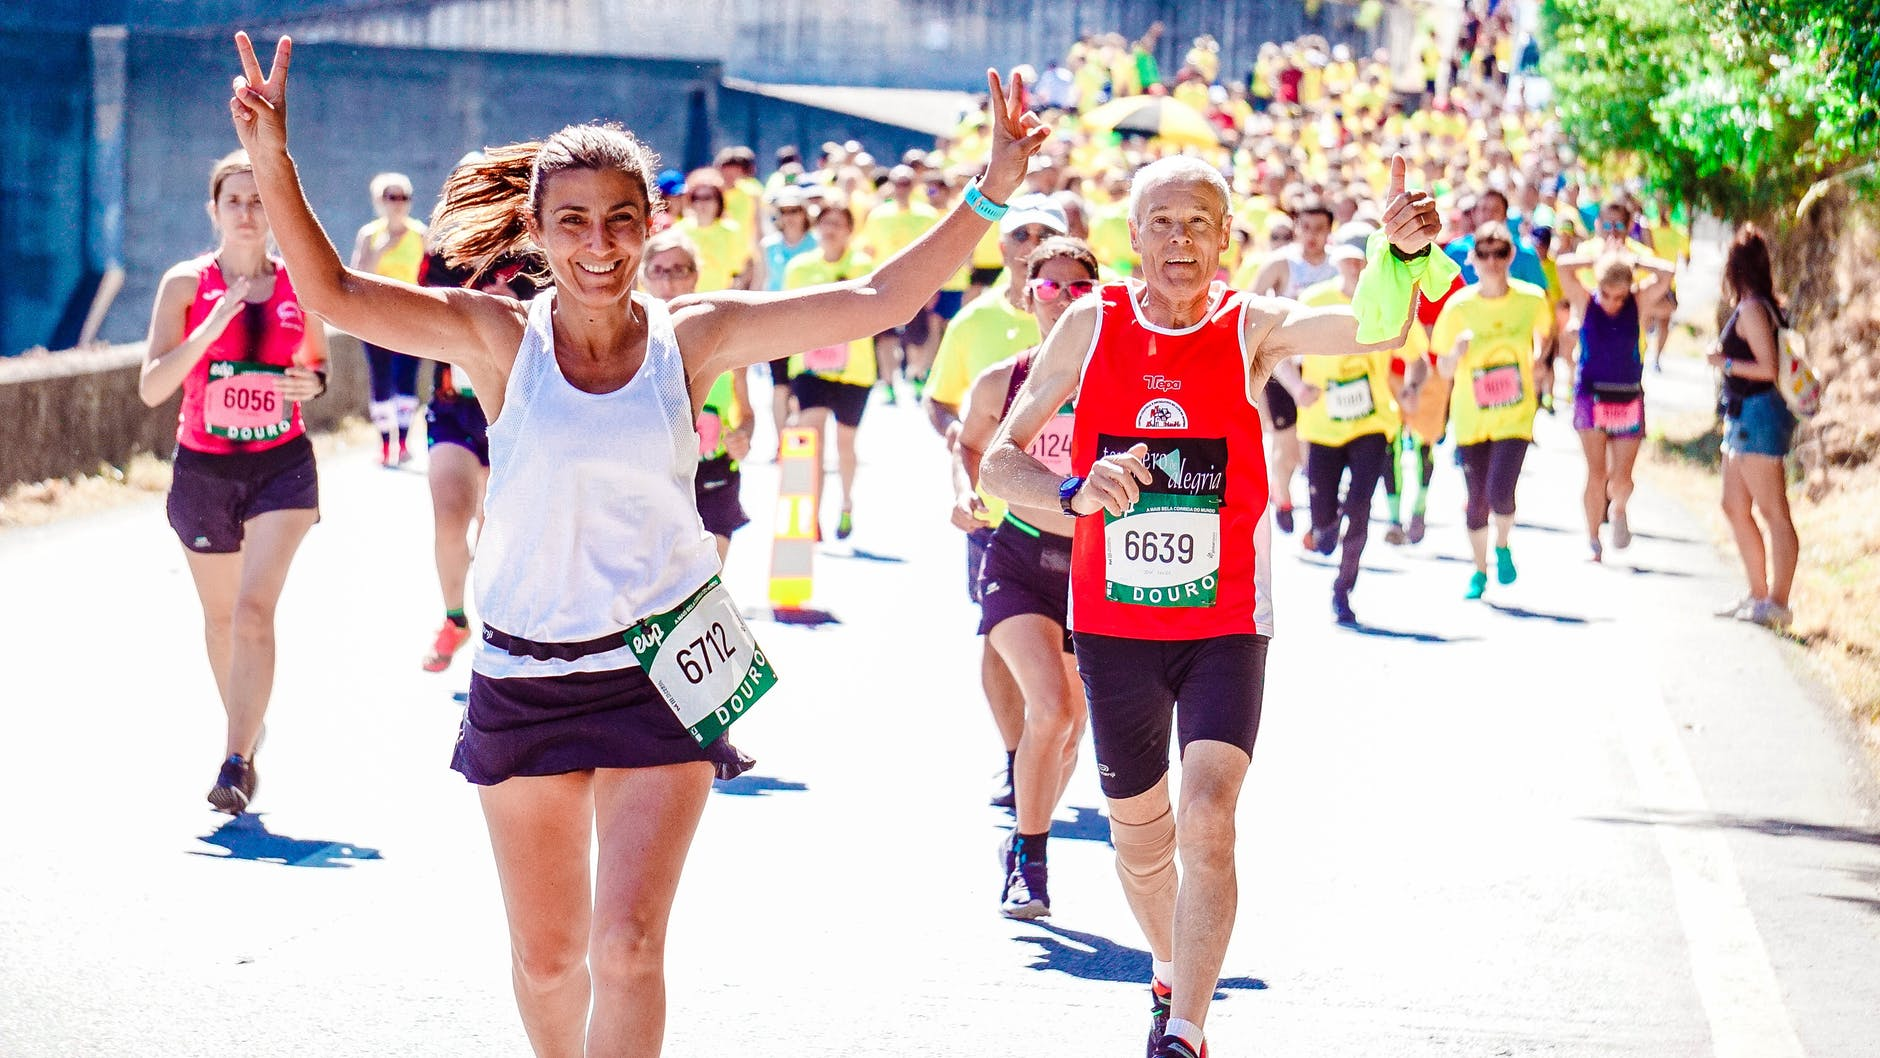 female and male runners on a marathon